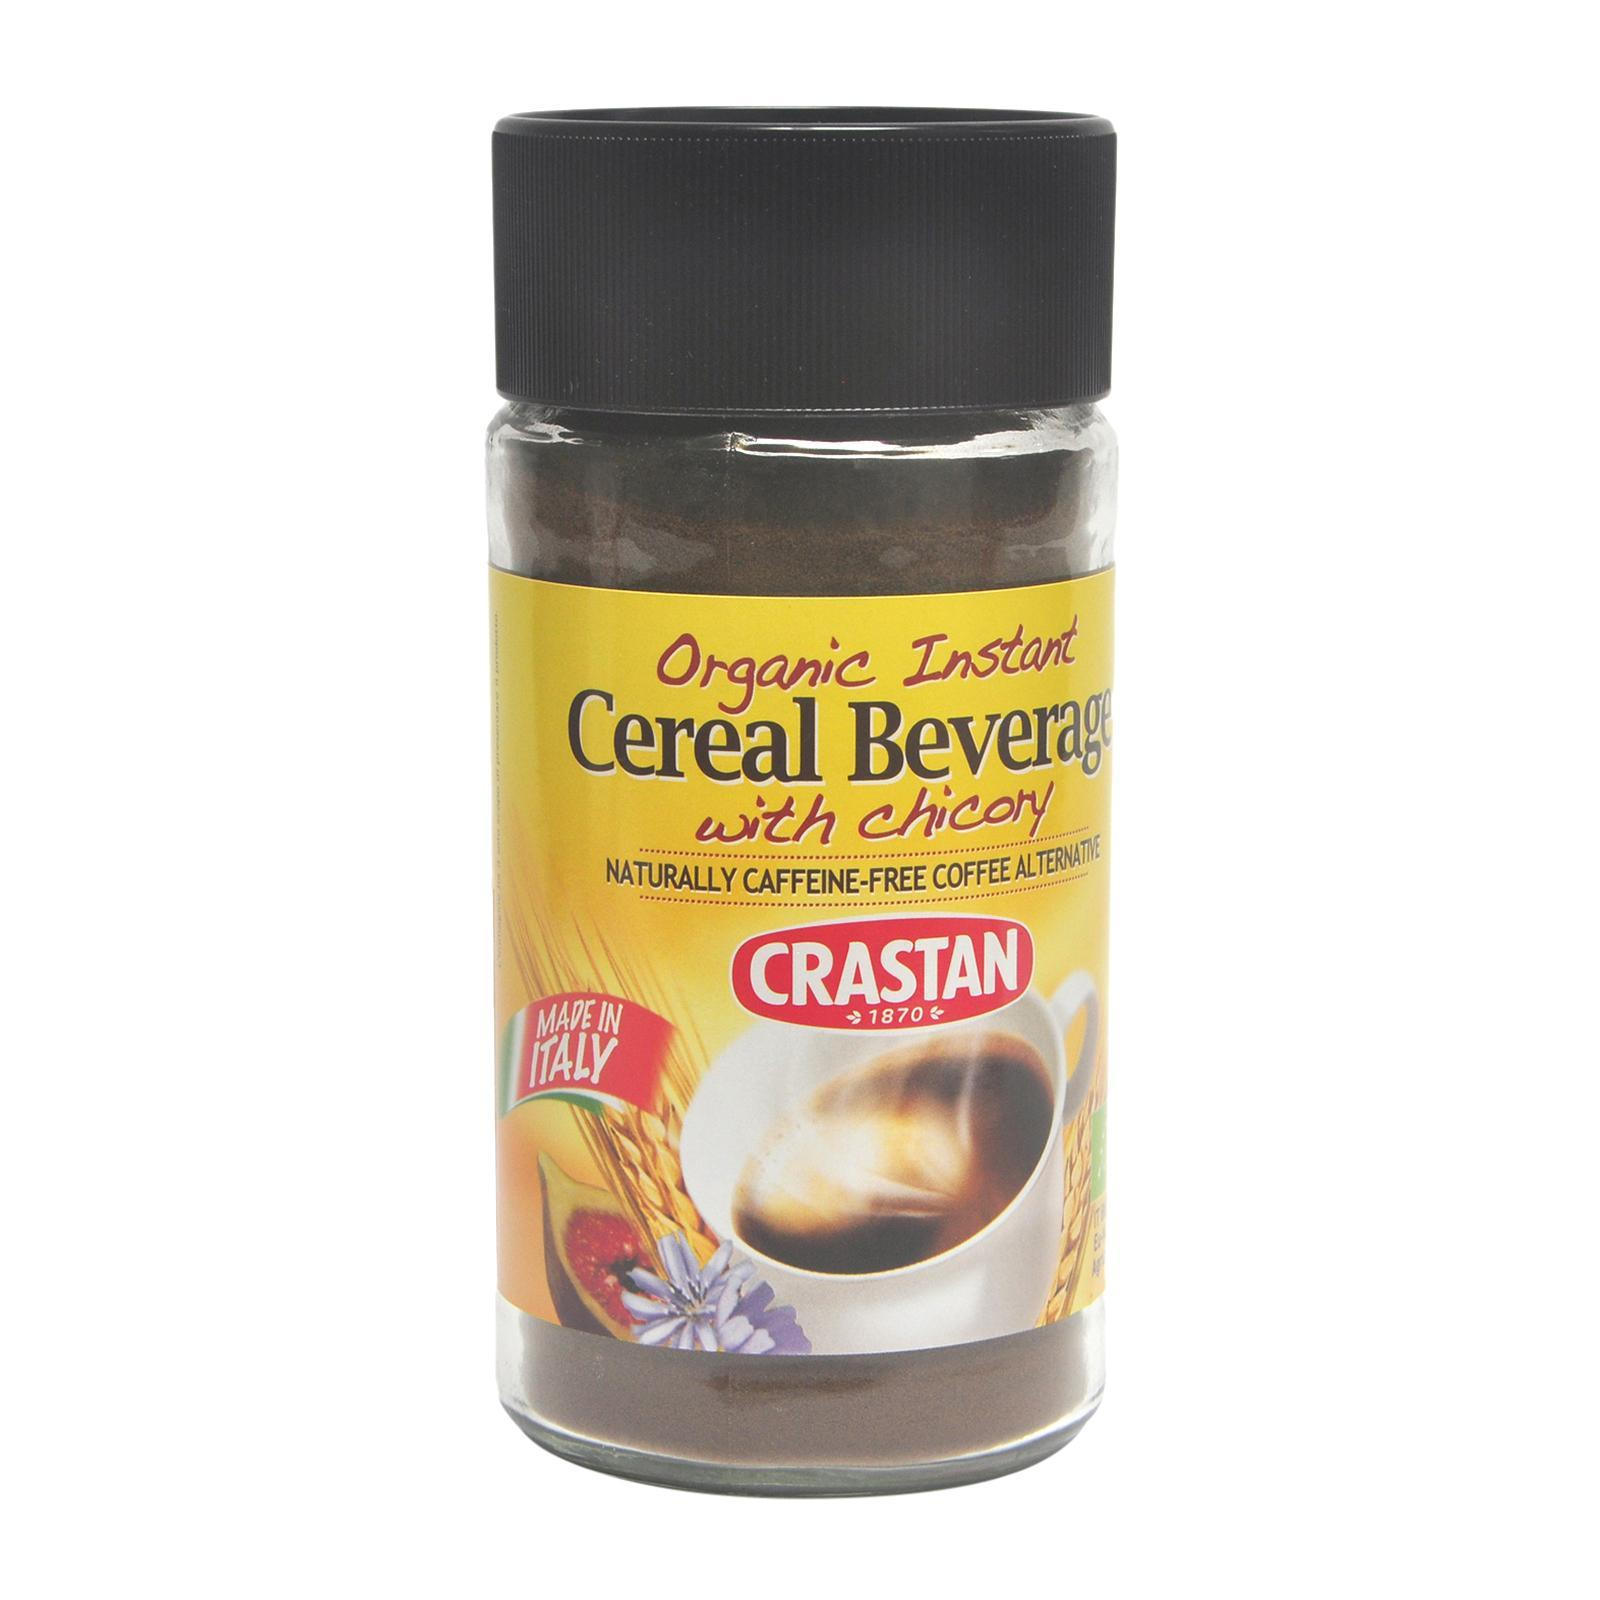 Crastan Organic Instant Cereal Beverage With Chicory By Redmart.